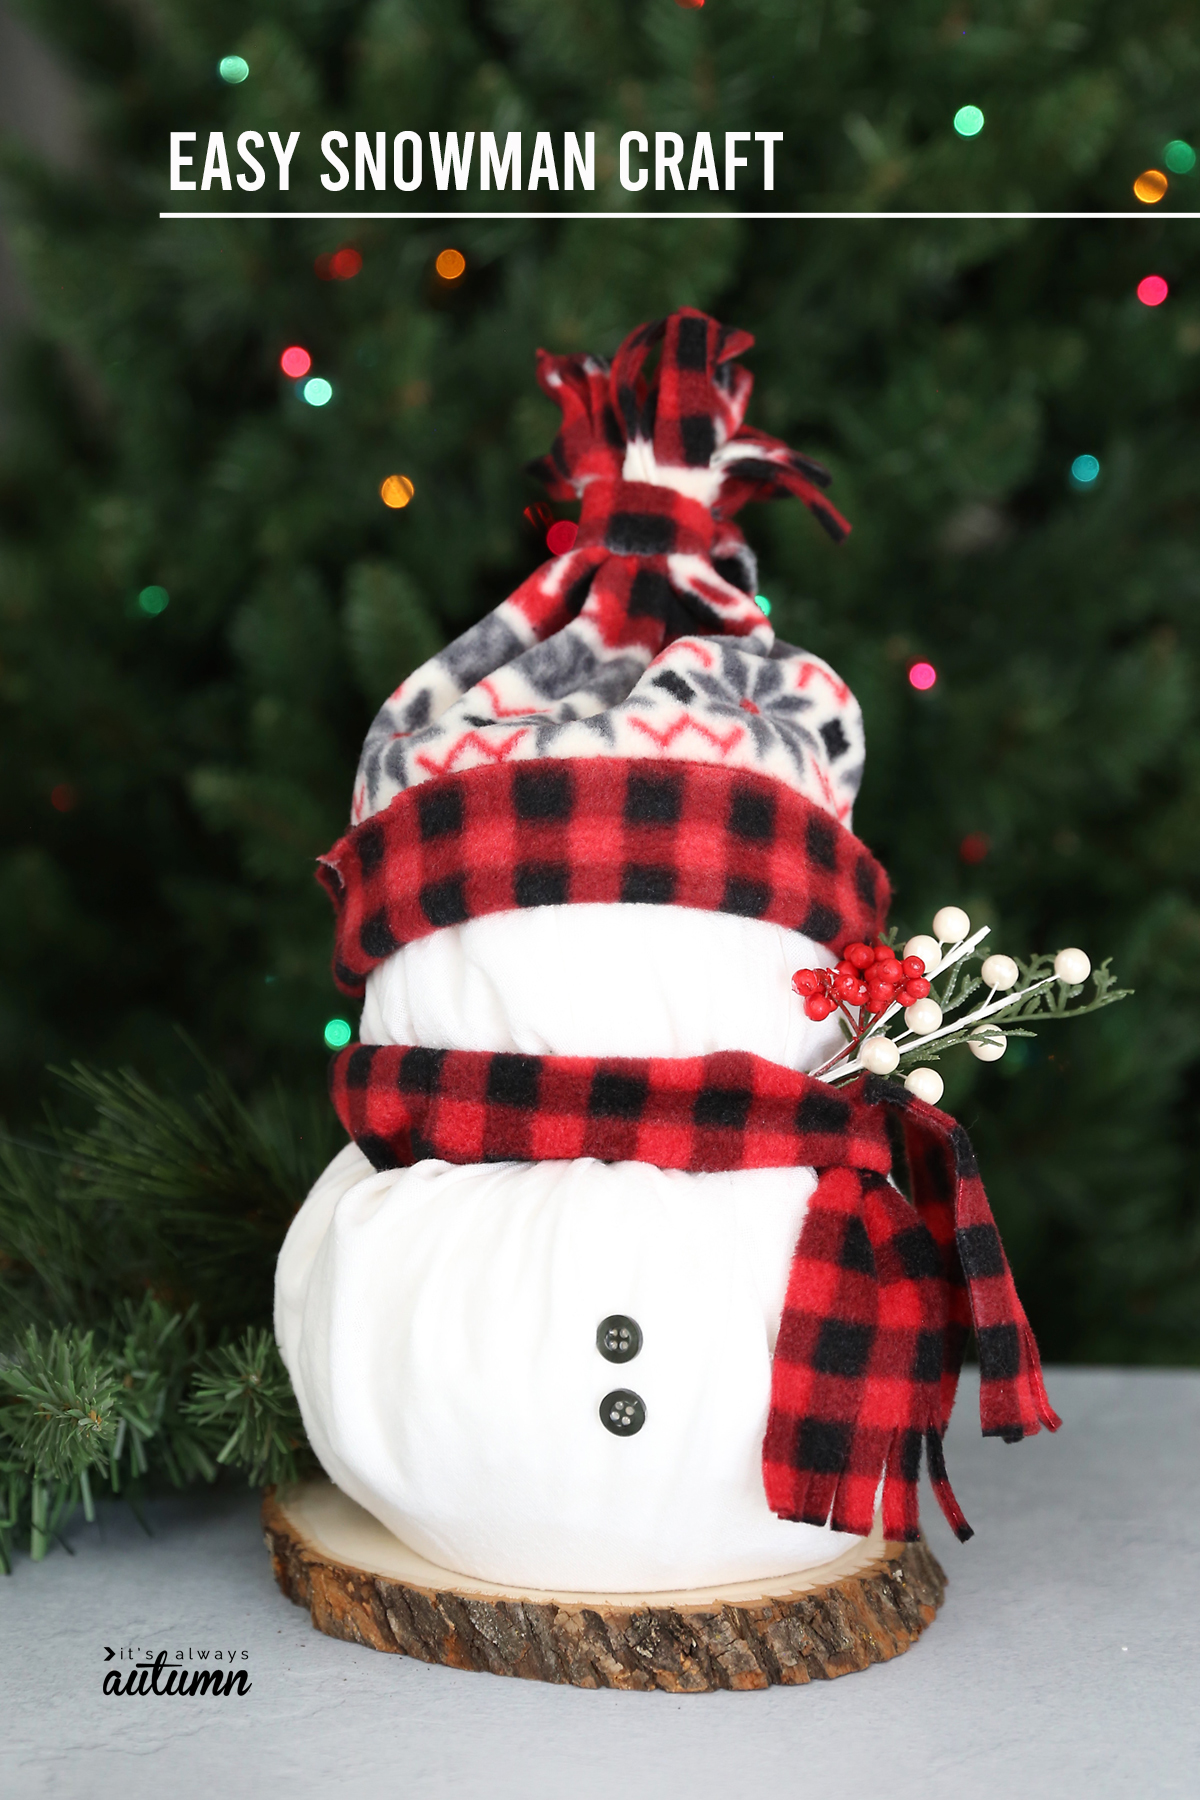 Snowman craft made from two rolls of toilet paper wrapped in white fabric with fleece scarf and hat